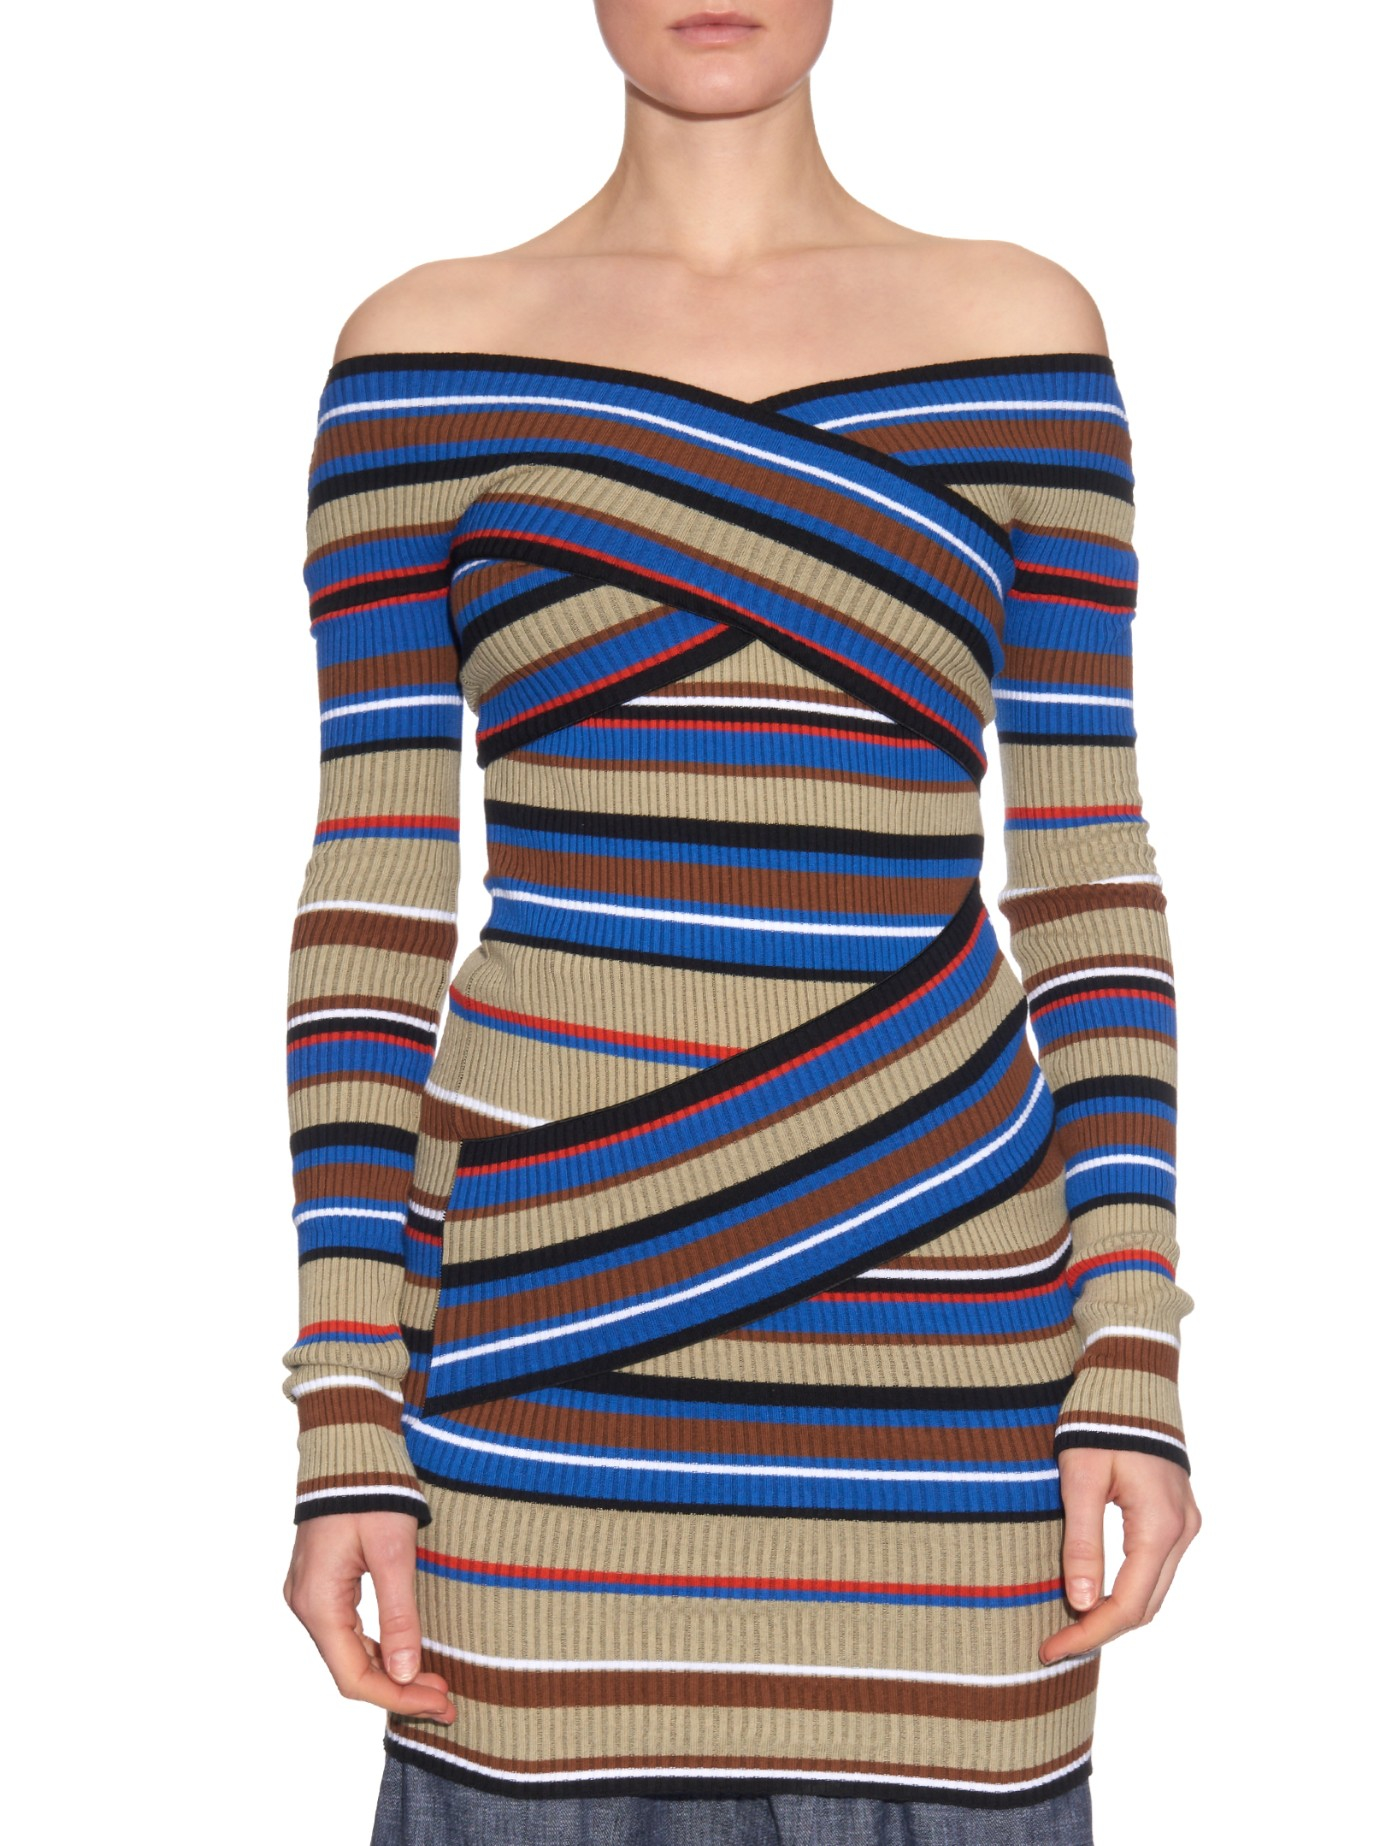 Msgm Off-the-shoulder Striped Sweater in Blue | Lyst